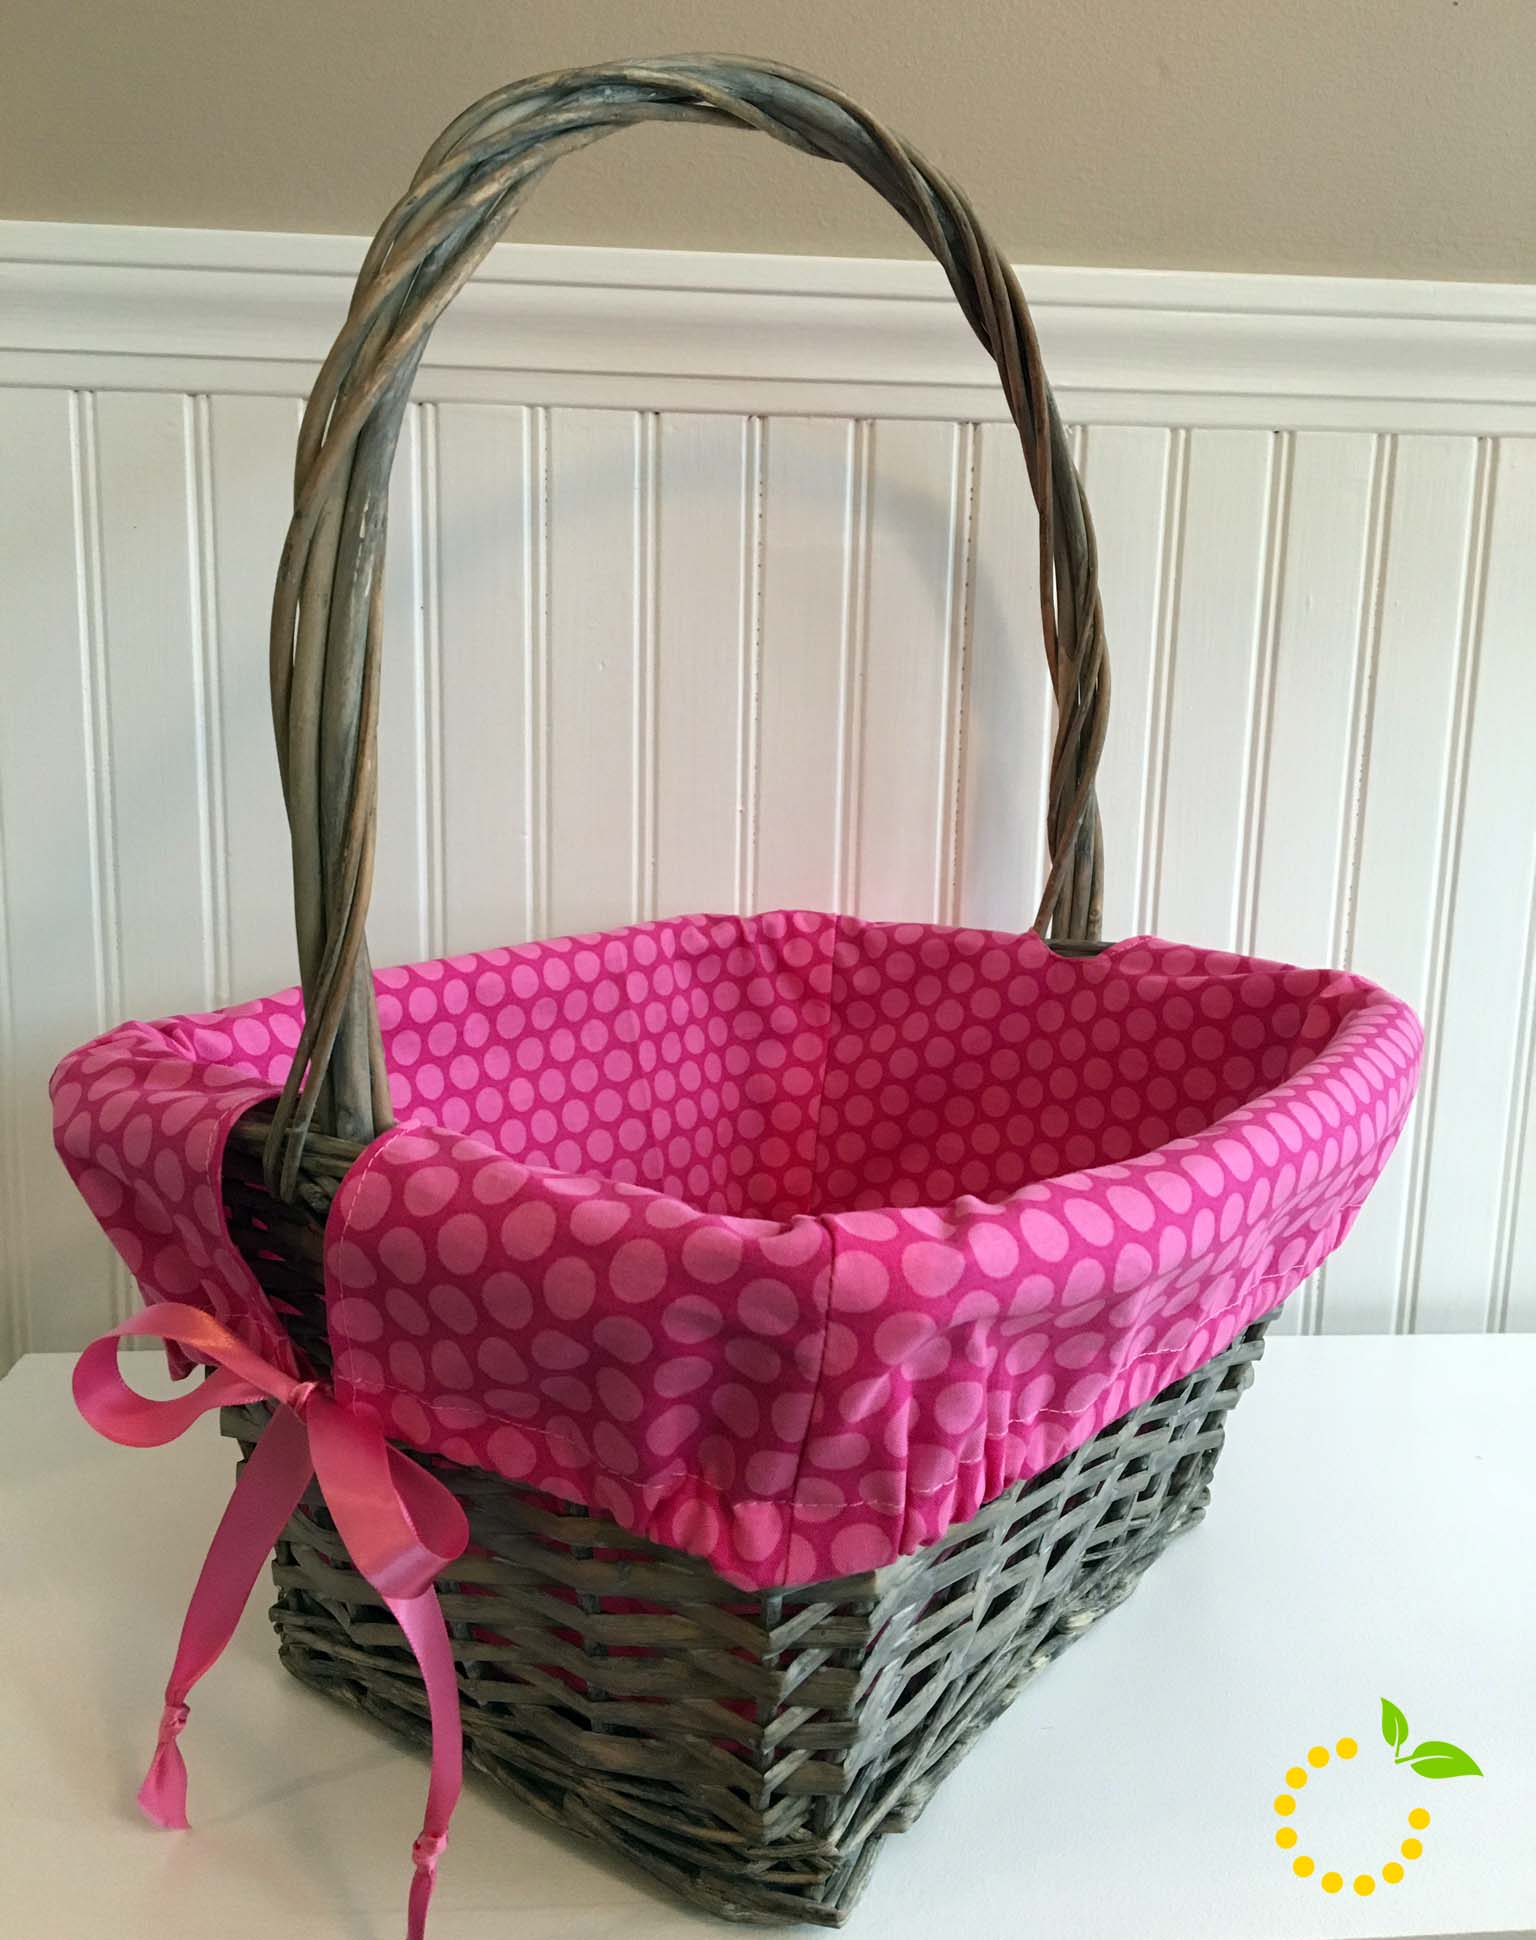 Fabric Lined Basket sweetlemonmade.com